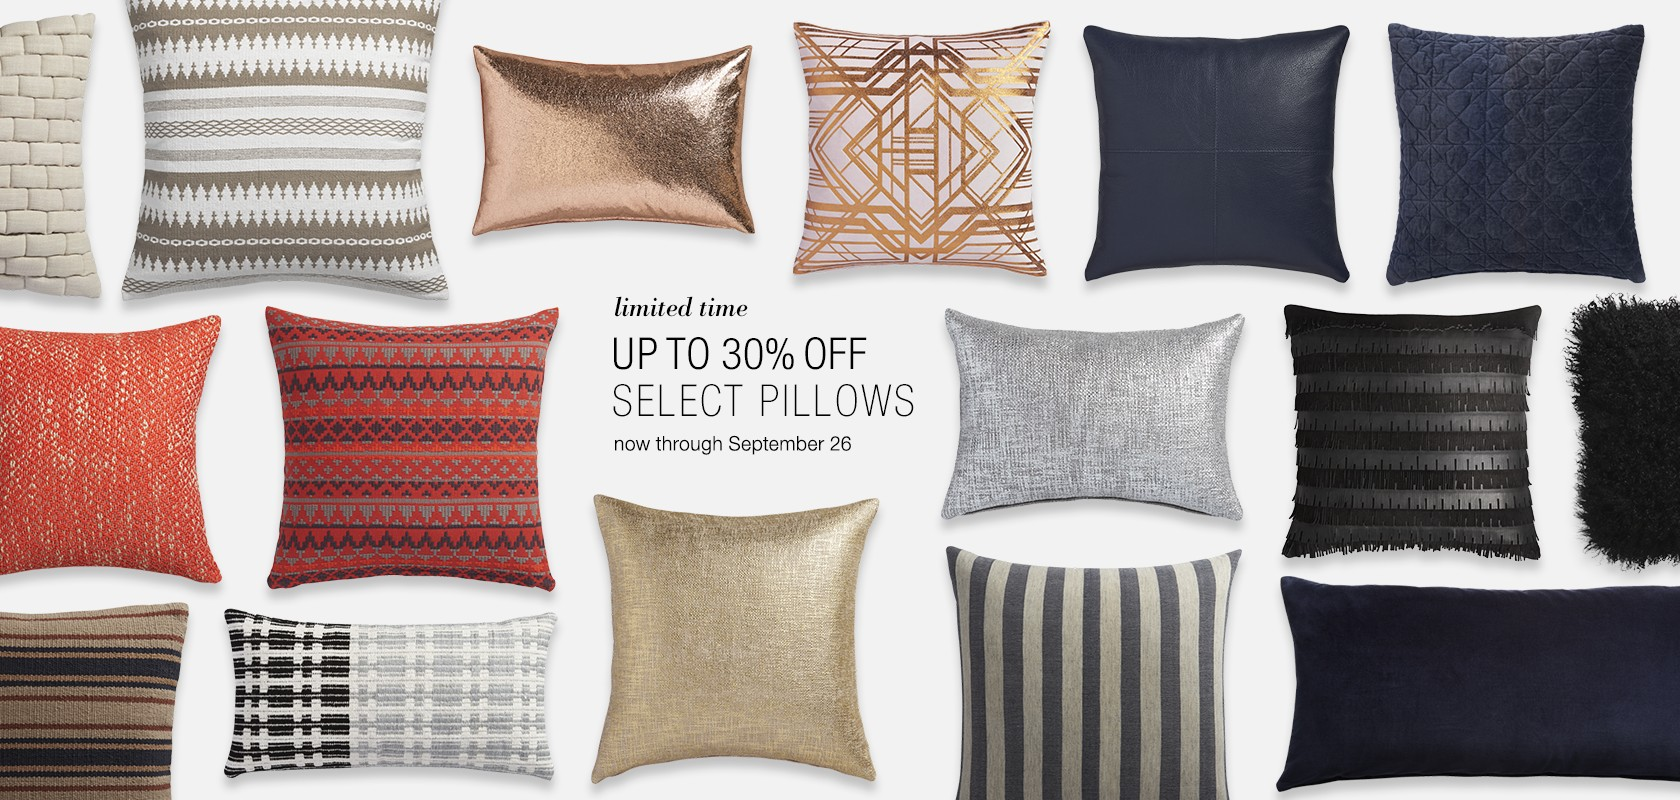 Up to 30% off select pillows